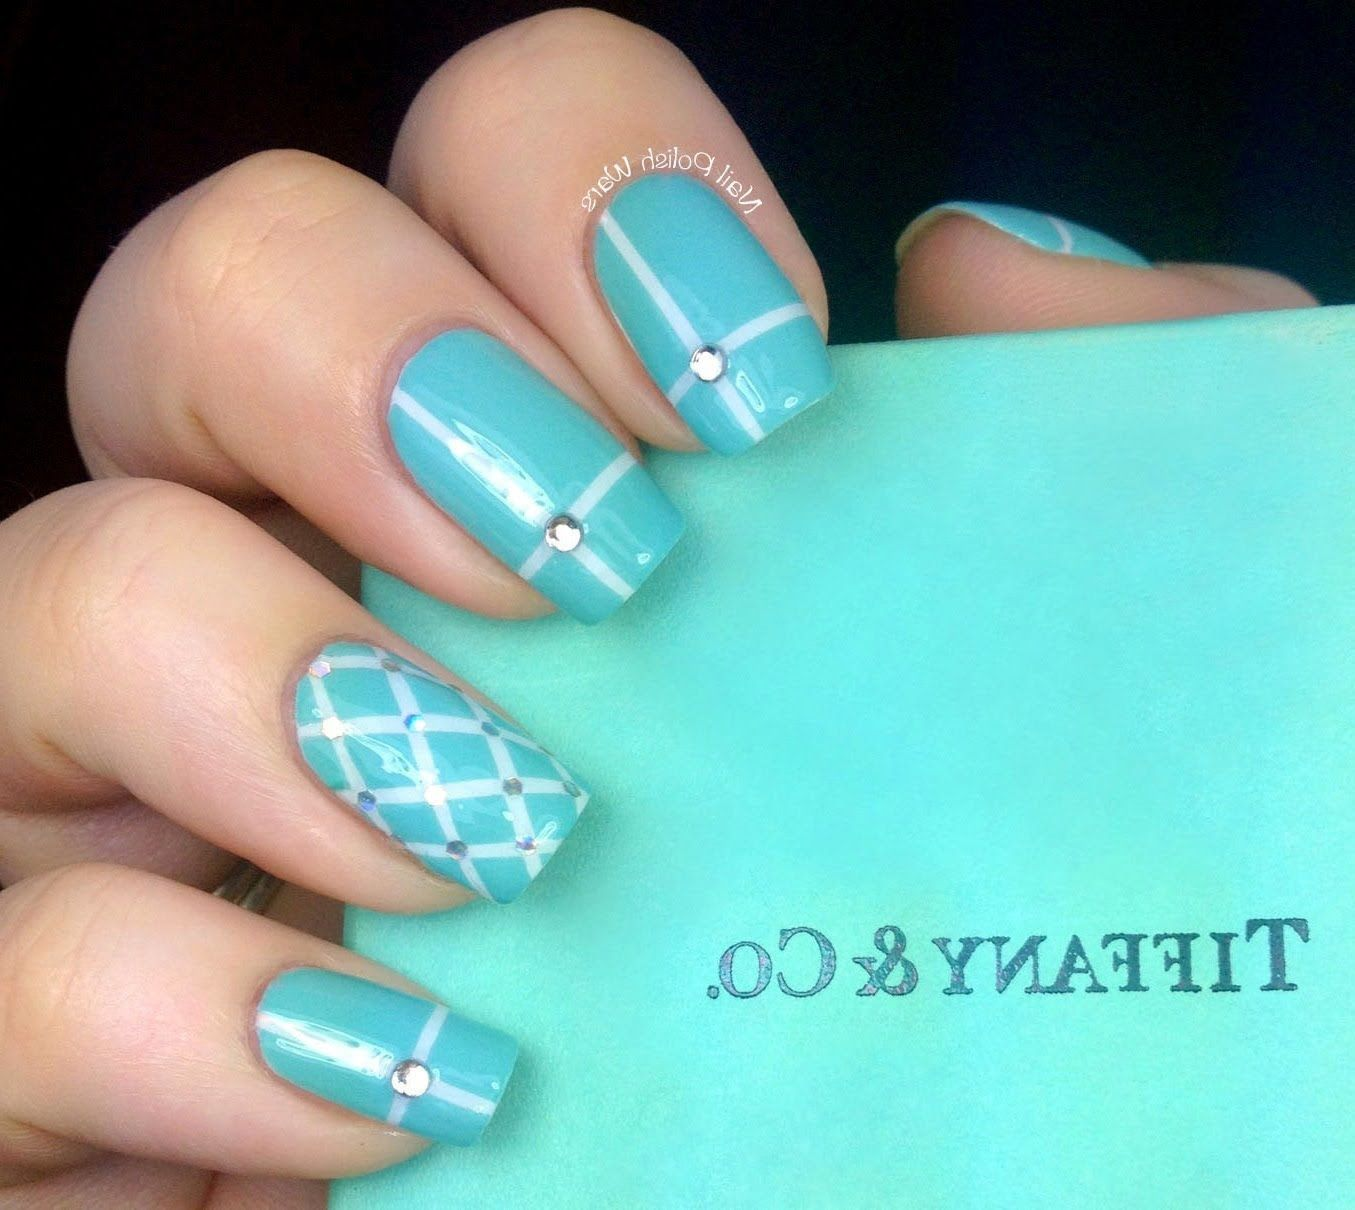 Tiffany and co inspired nail art designs how to with art design tiffany and co inspired nail art designs how to with art design about cute beginners nails prinsesfo Images